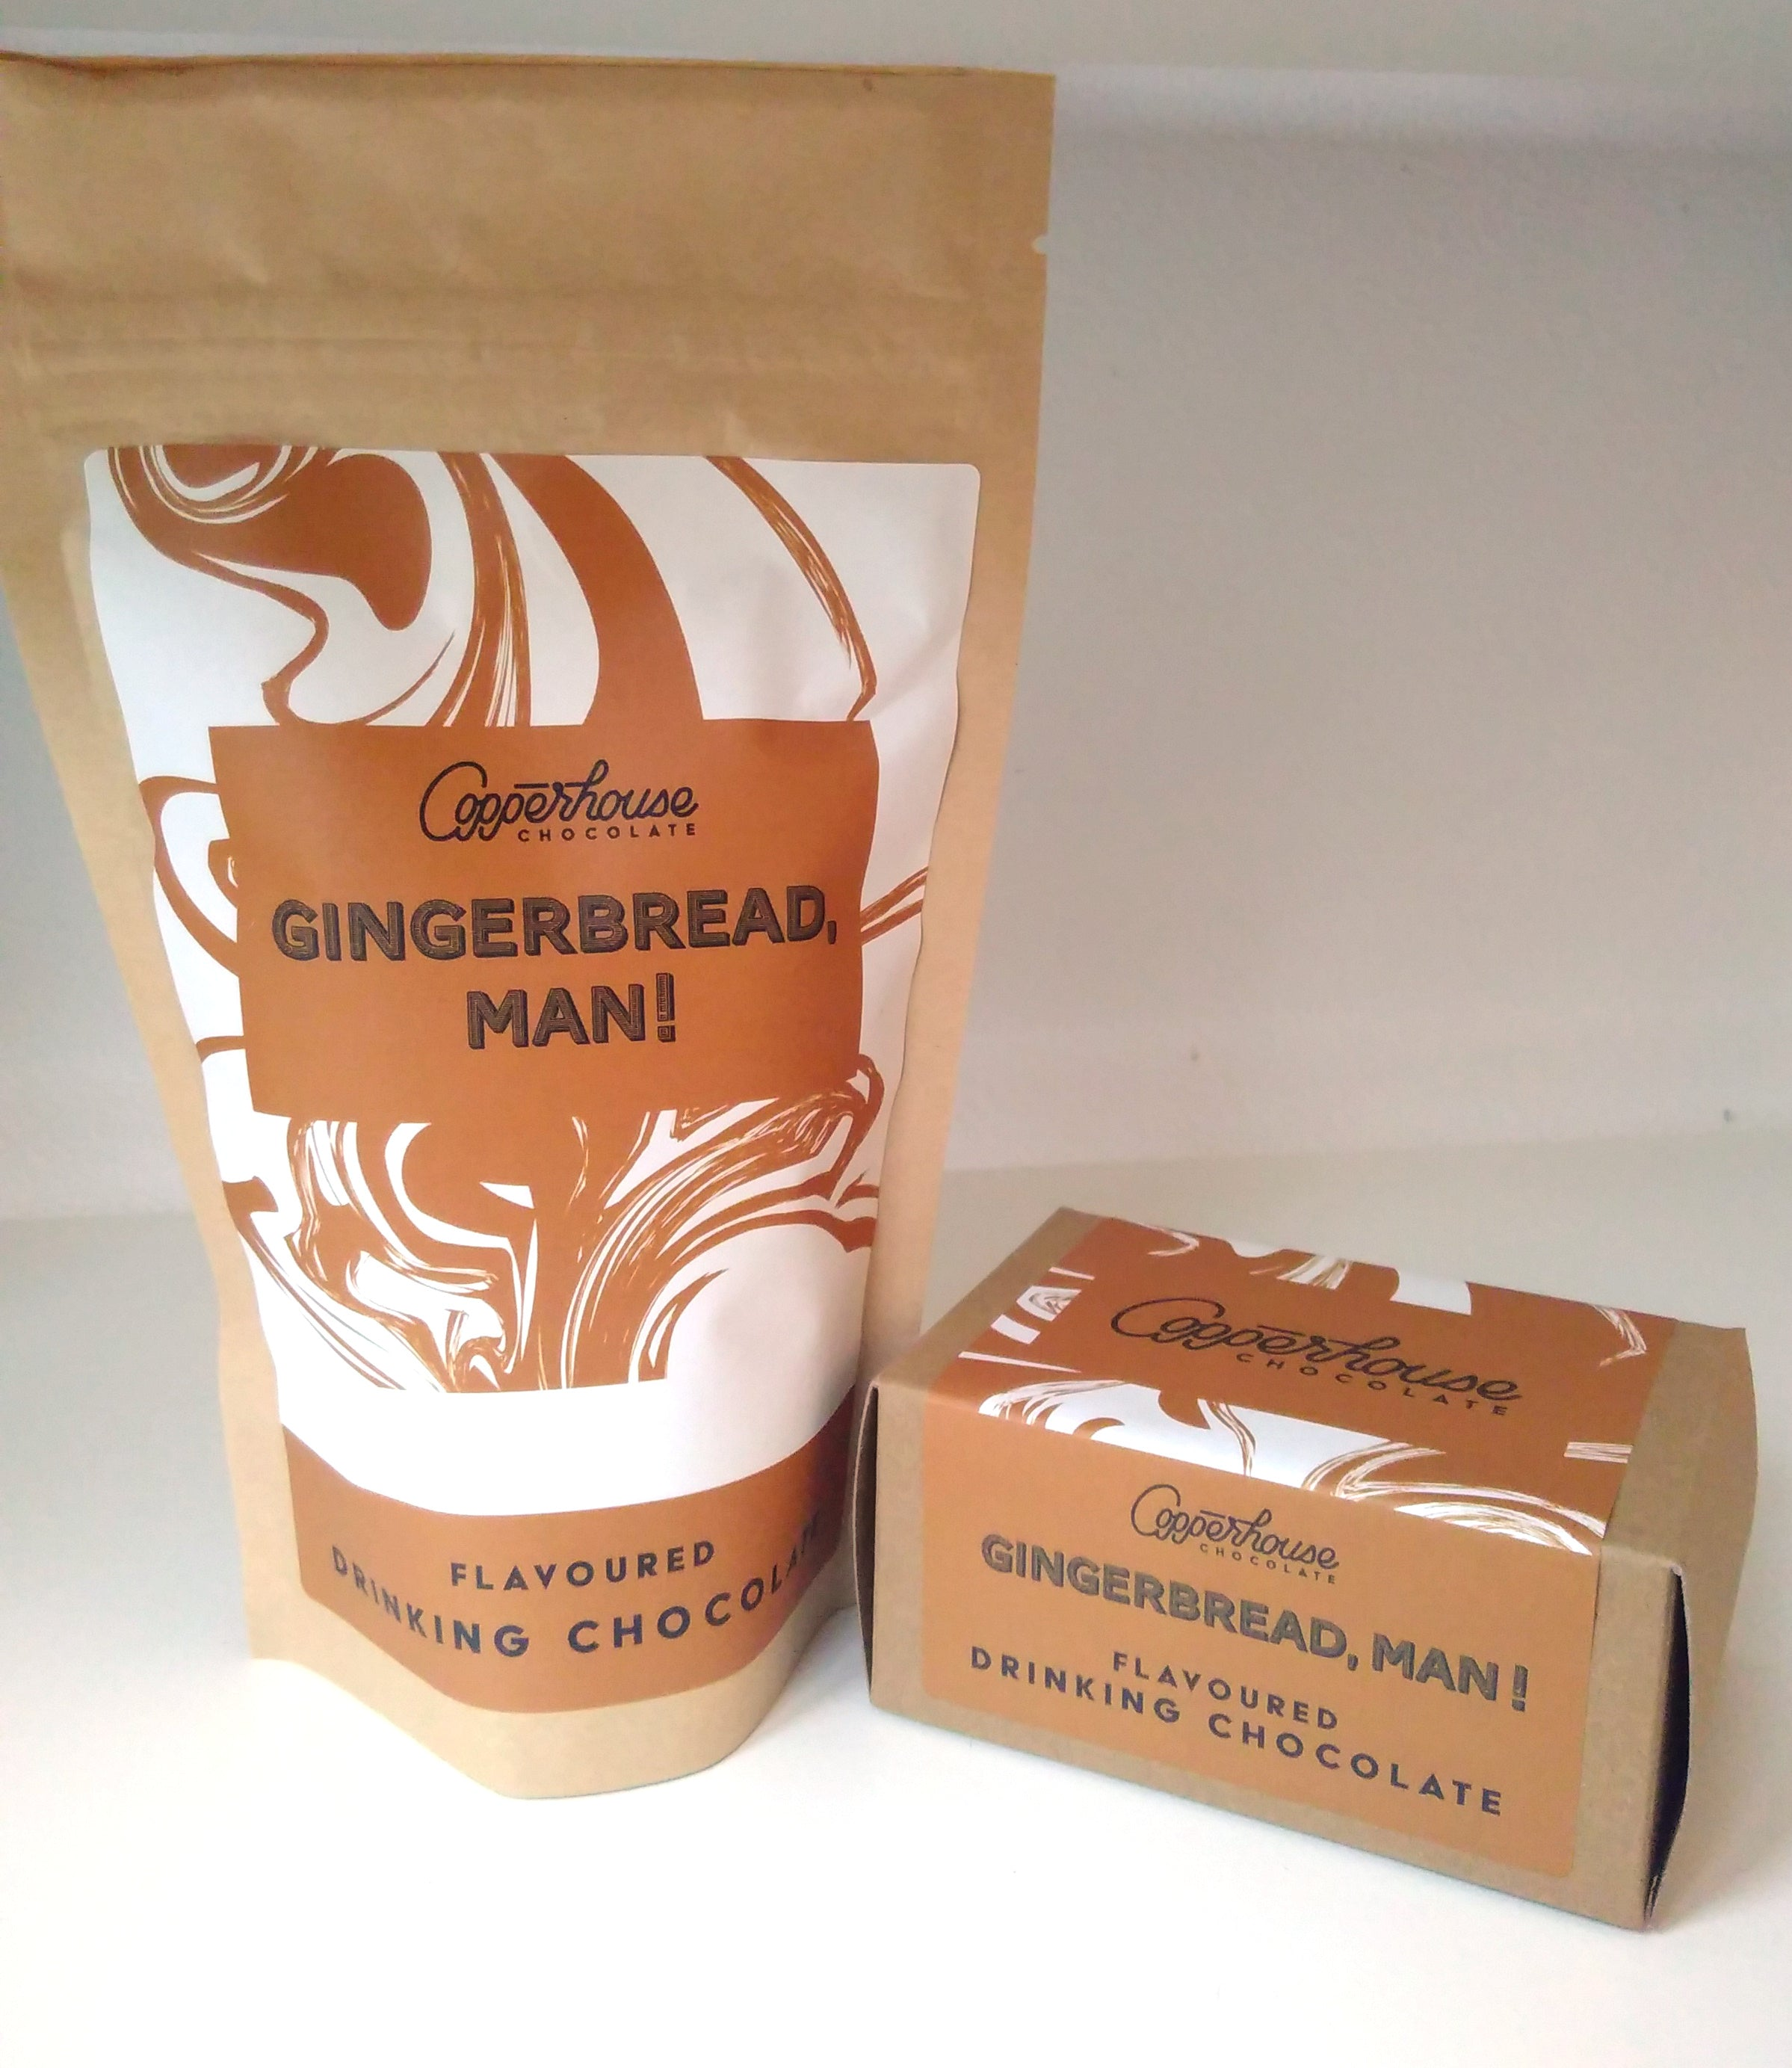 Gingerbread, man! flavoured drinking chocolate